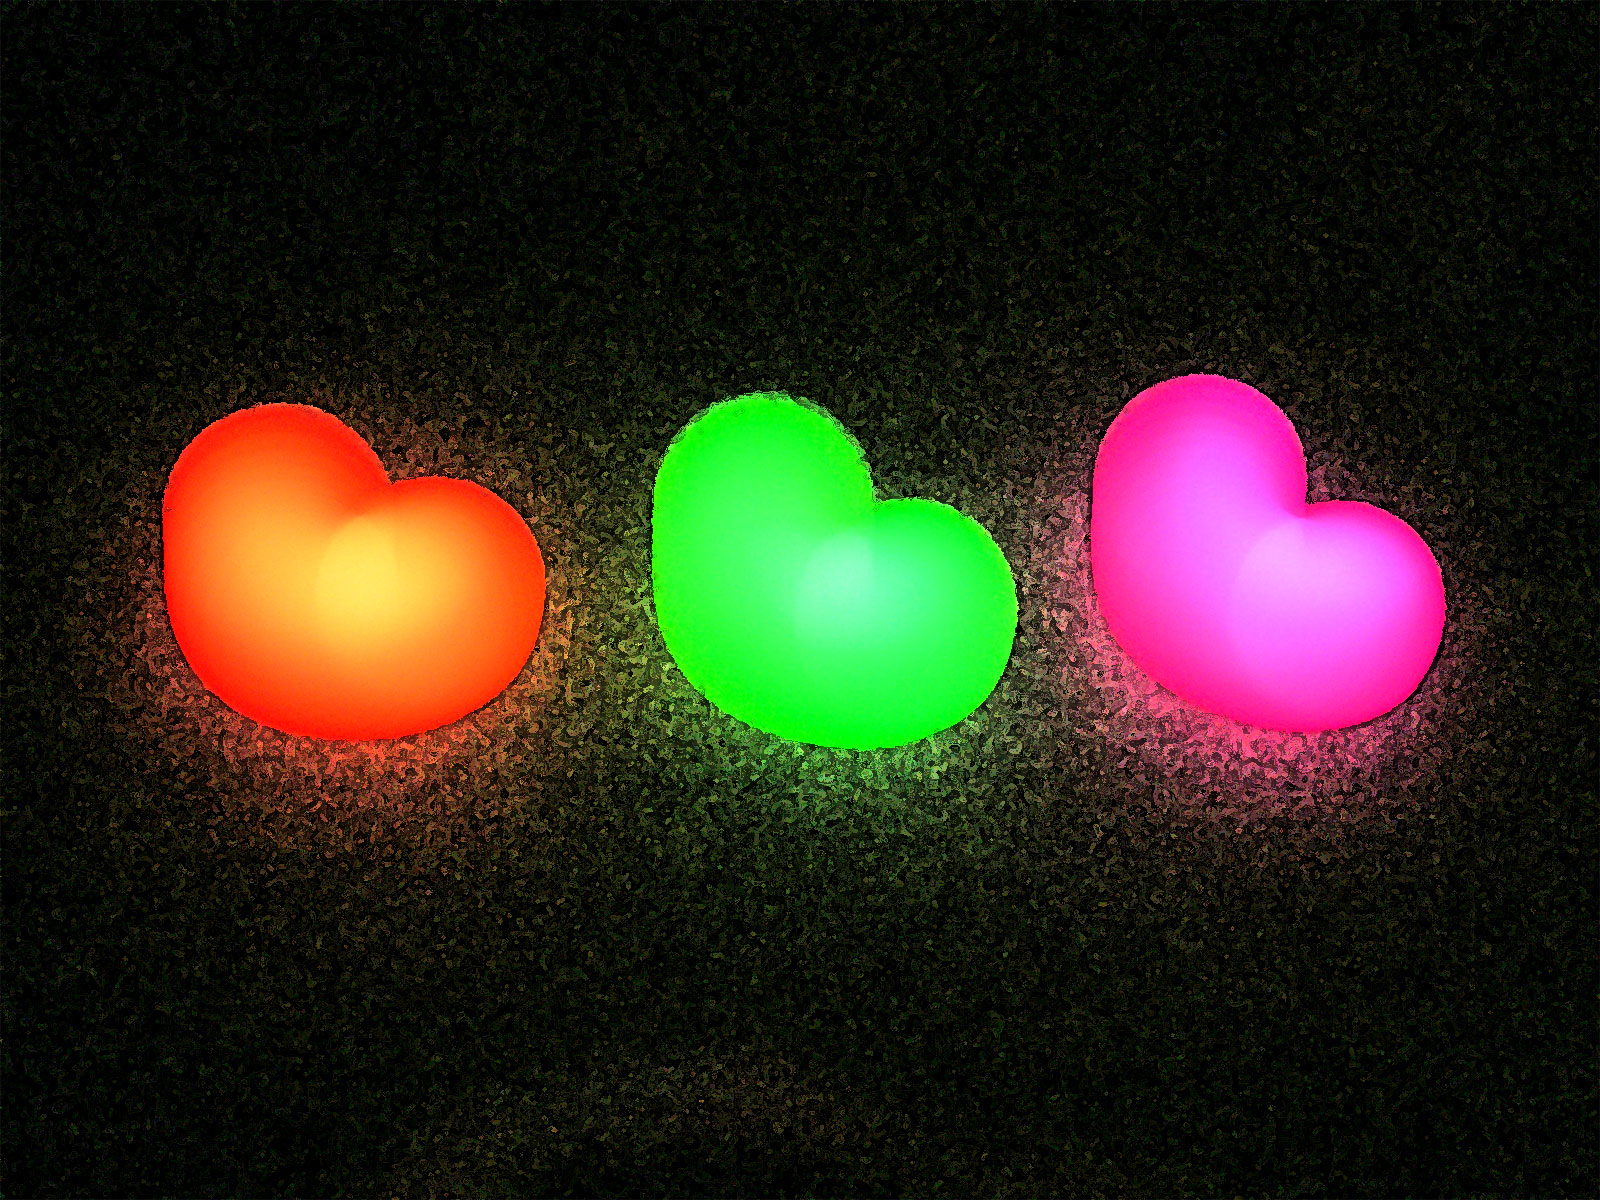 Android Live Wallpaper 3d Effect Download Neon Hearts Wallpaper Gallery